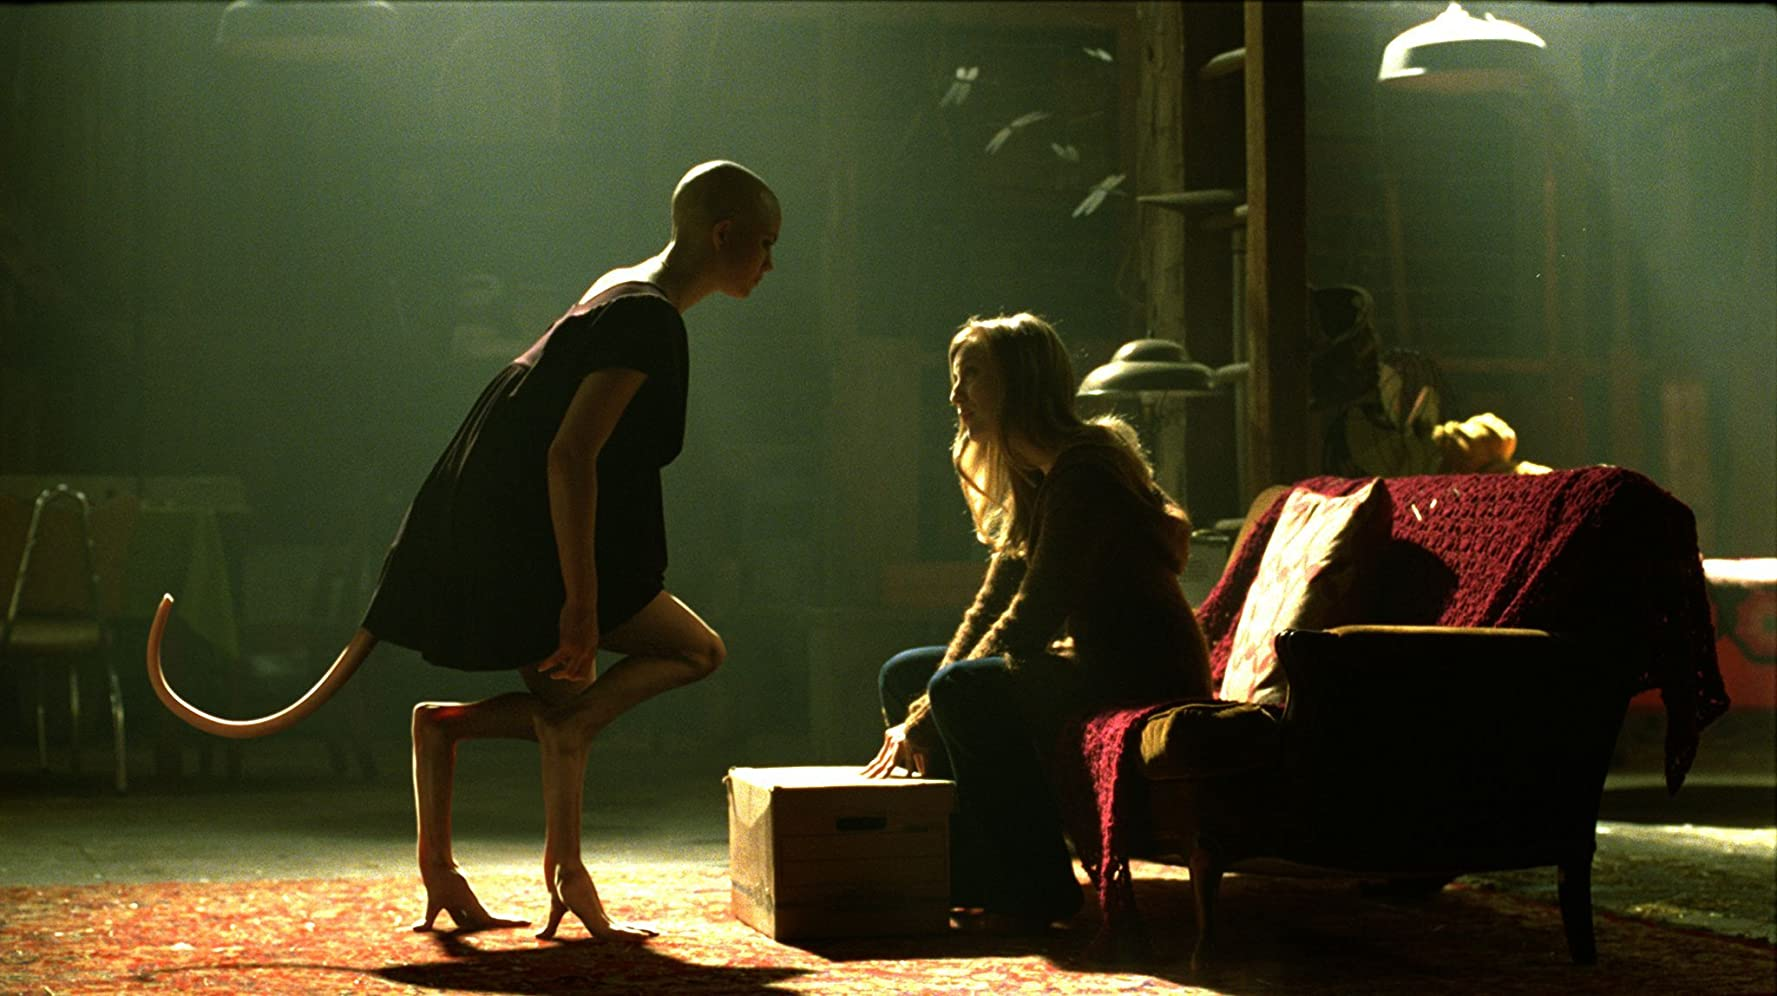 Sarah Polley and Delphine Chanéac in Splice (2009)